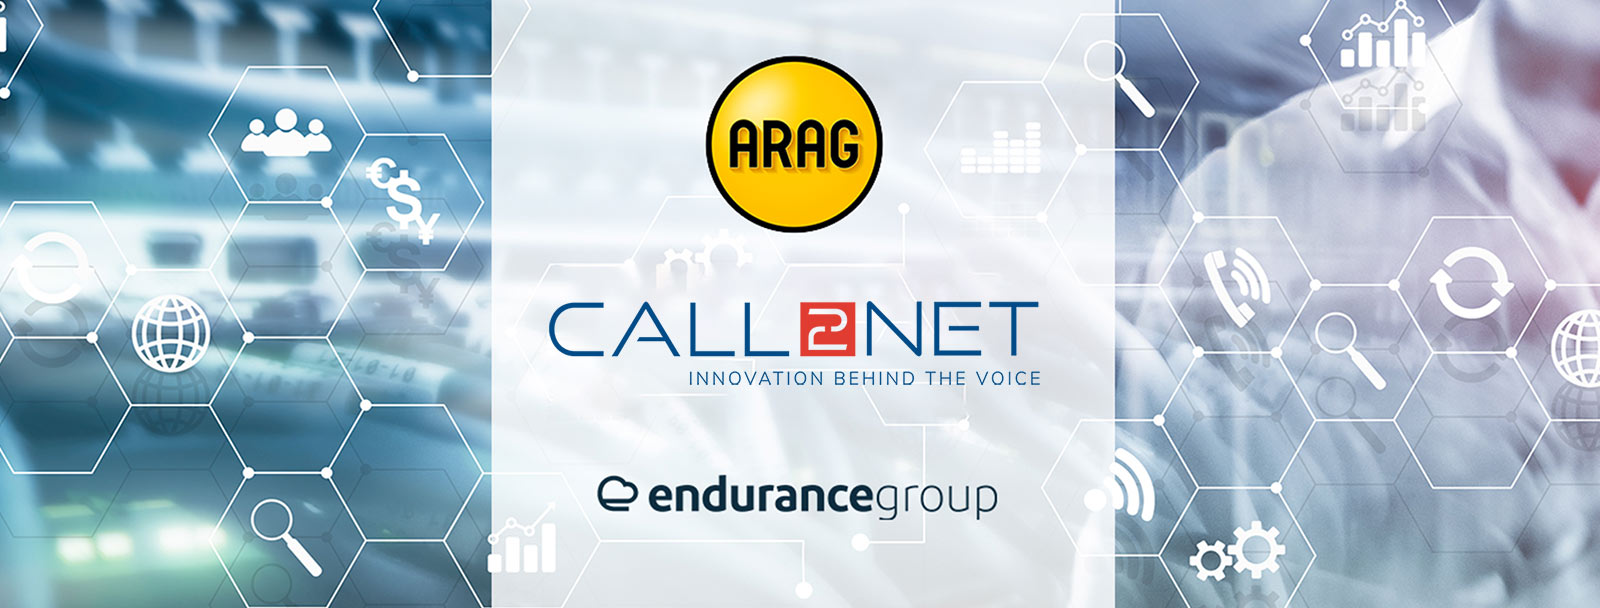 Arag e Call2Net